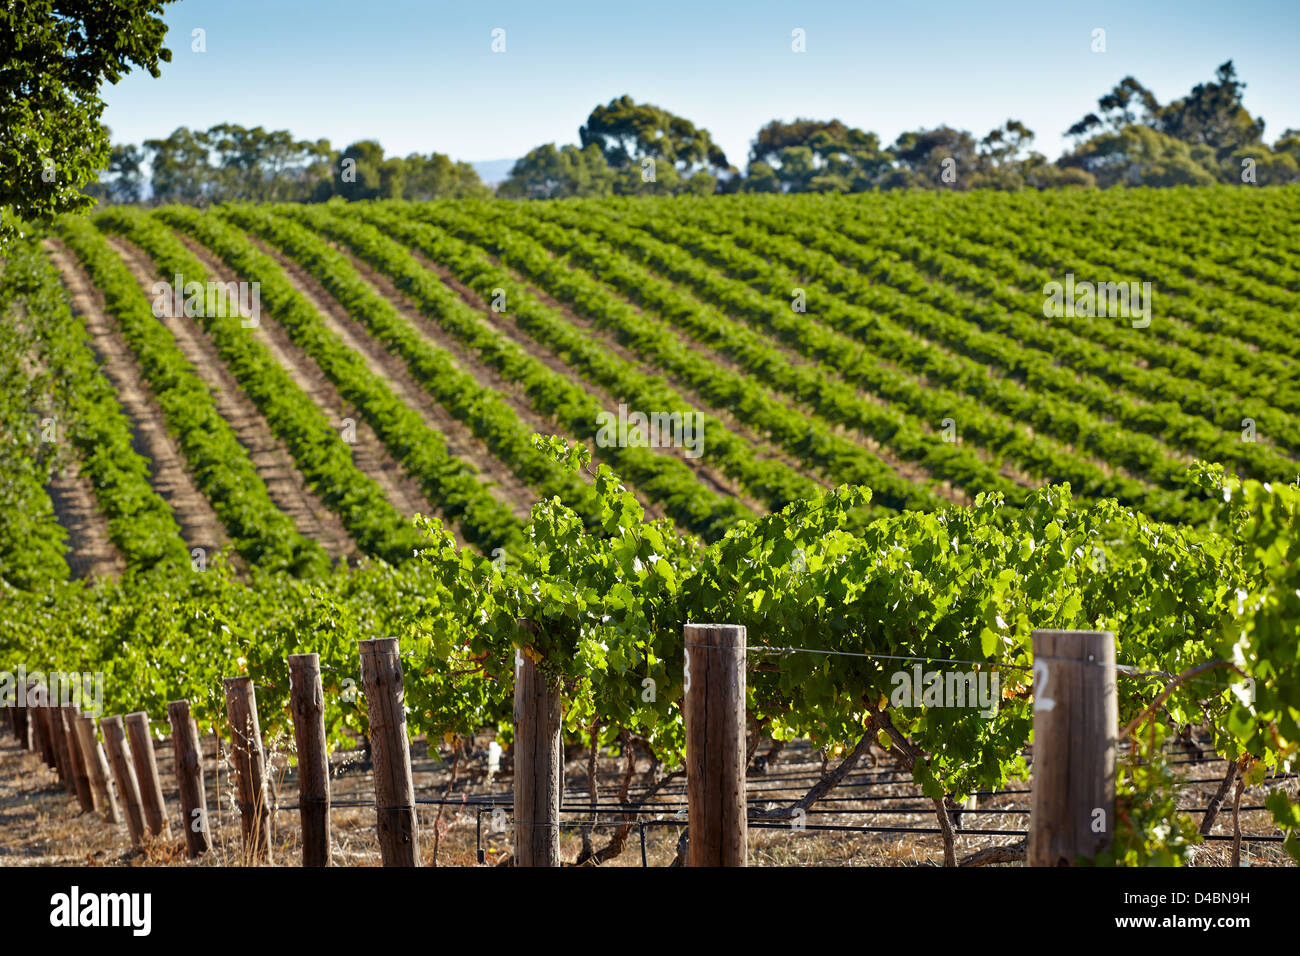 VInes growing in the Barossa Valley wine region of South Australia - Stock Image